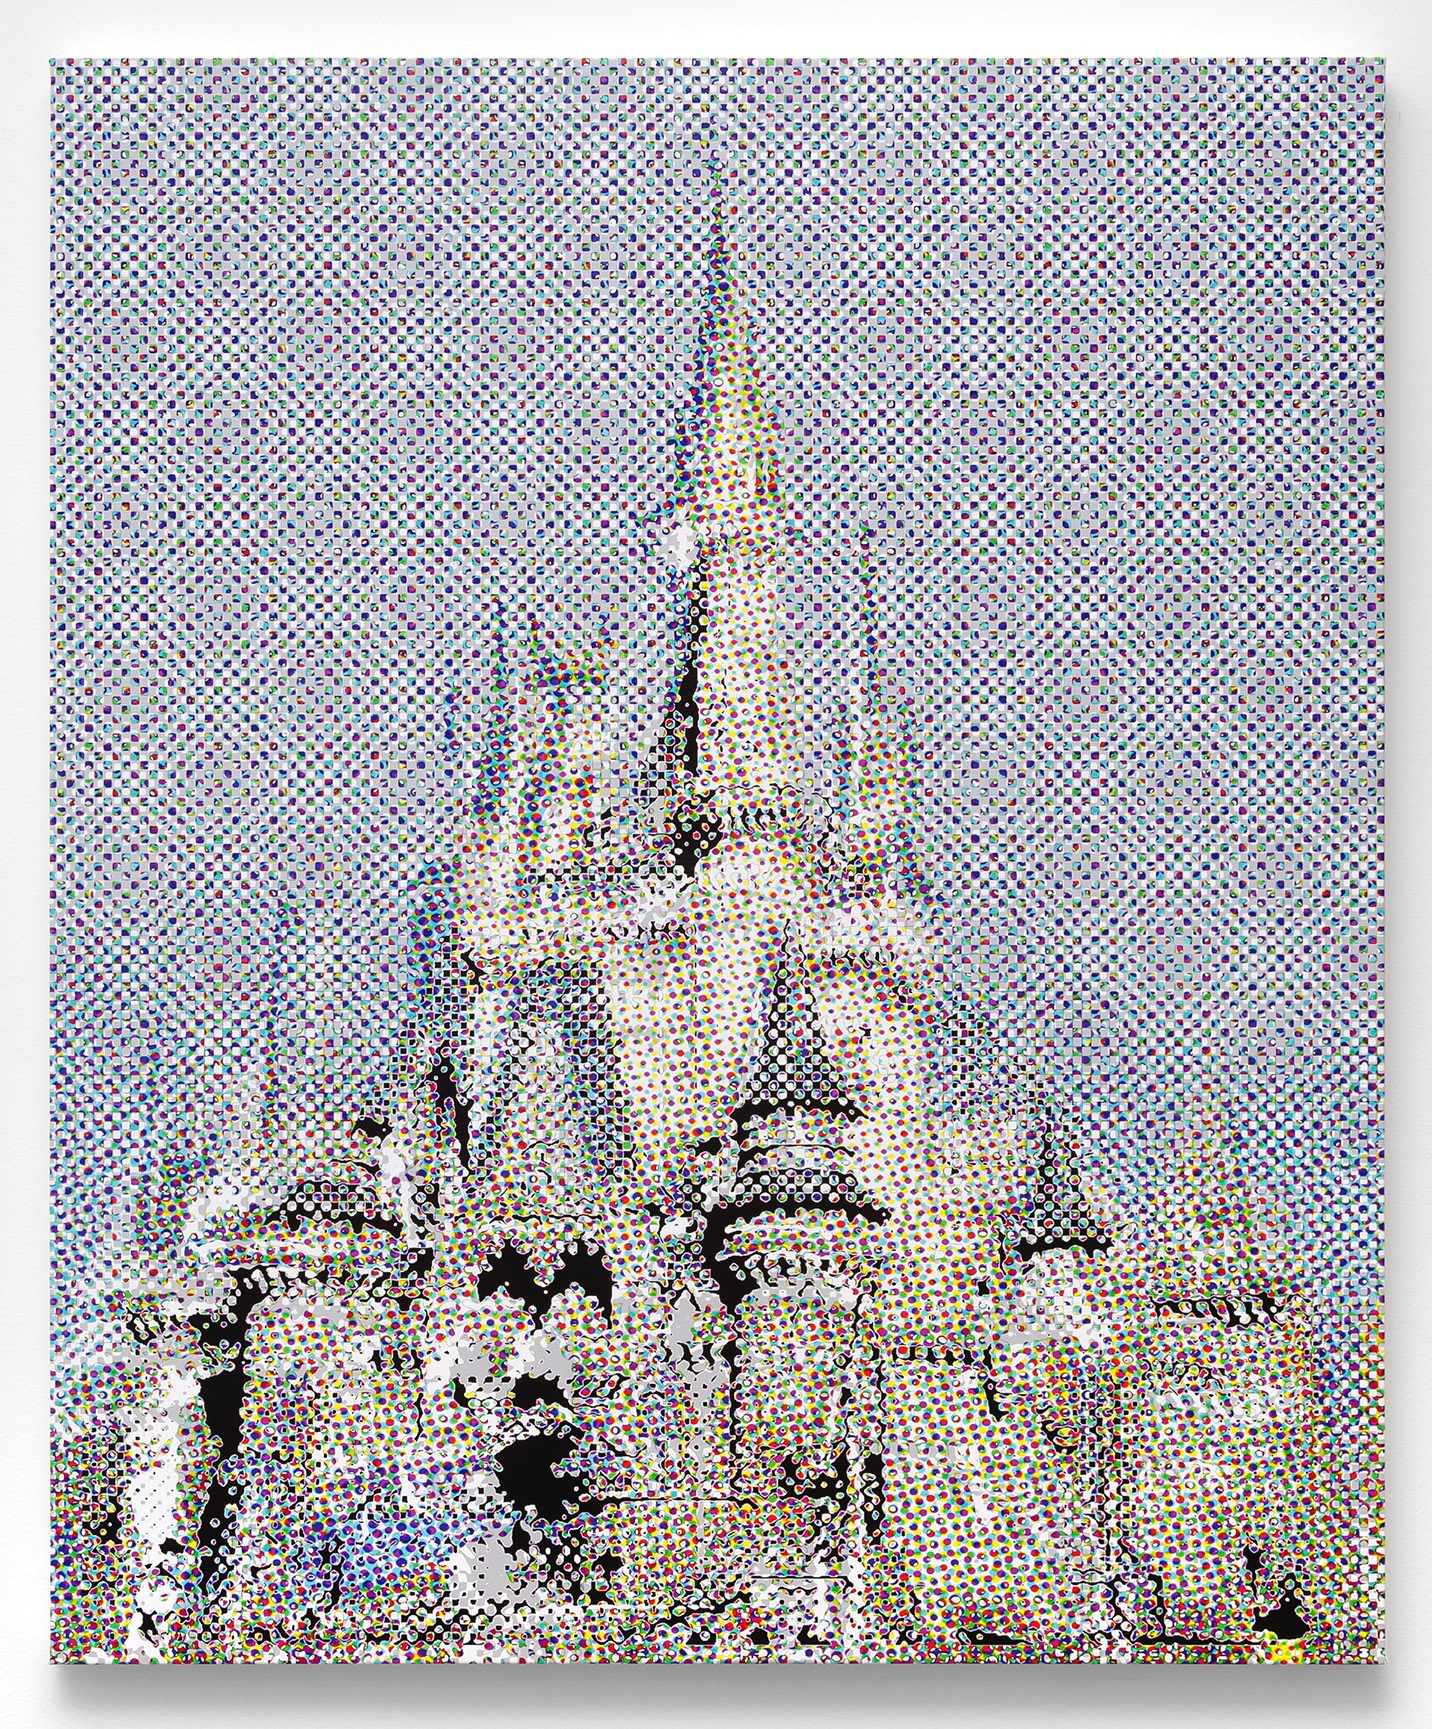 "Disney Castle (The Mirage), 2108, archival ink and acrylic on canvas, 41"" x 35"" inches"